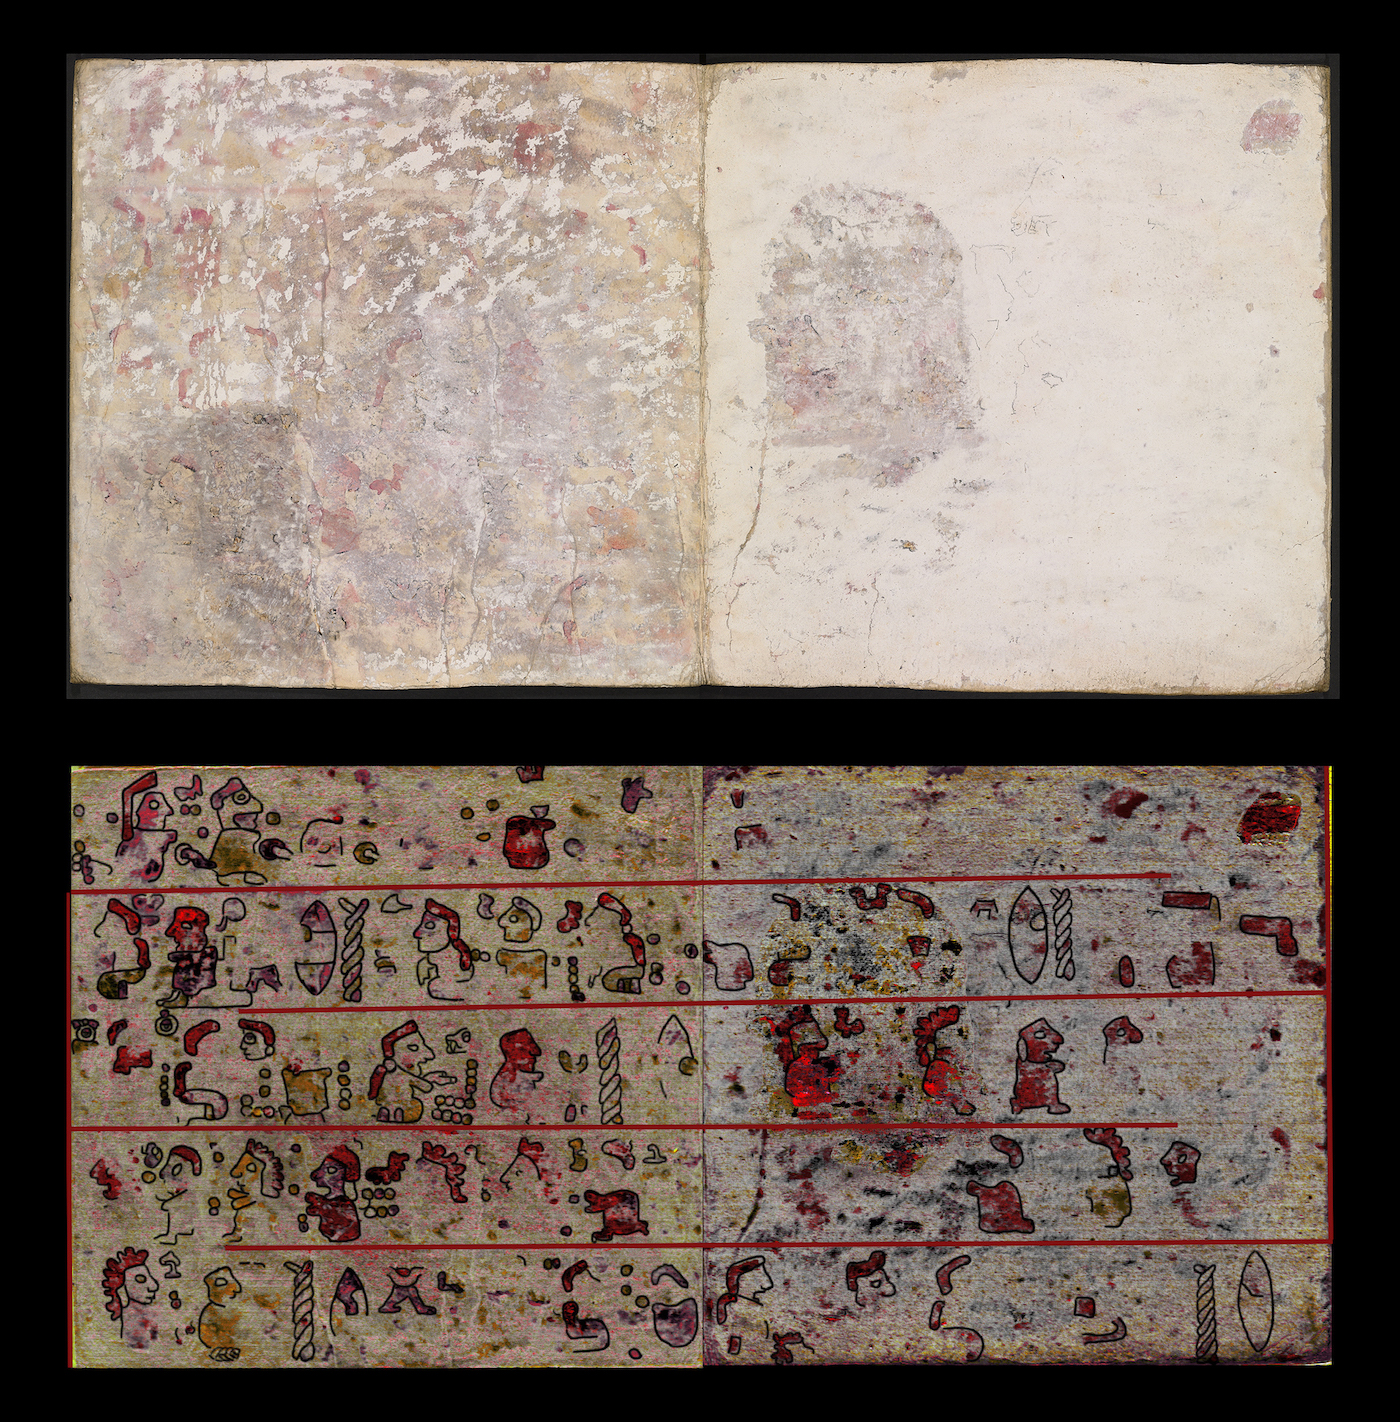 Pages 10 and 11 of the back of Codex Selden, with pages as they appear to the naked eye and images created using hyperspectral imaging to show the underlying hidden pictographic scenes (photo © Journal of Archaeological Sciences: Reports, 2016 Elsevier)